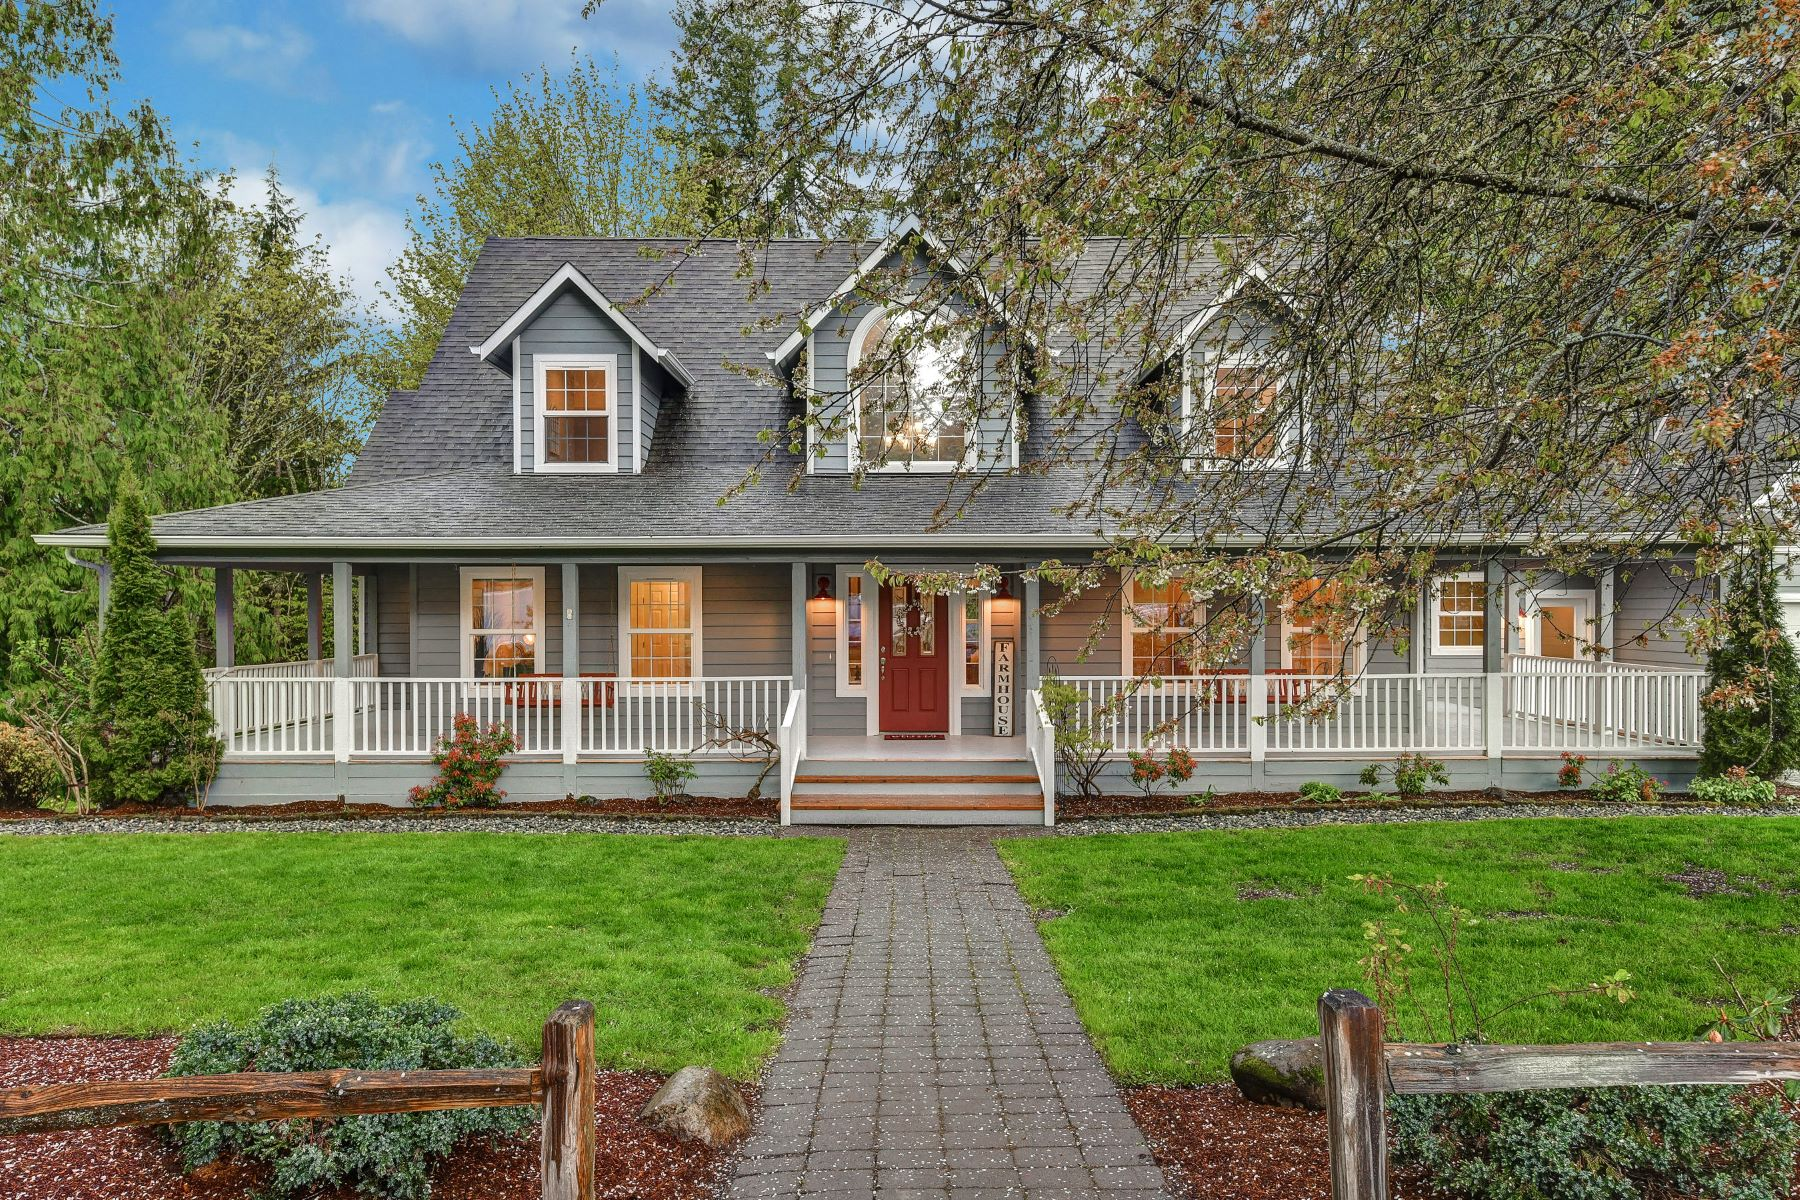 Single Family Homes for Sale at Exquisite Equestrian Farmhouse 10424 Bollenbaugh Hill Road Monroe, Washington 98272 United States